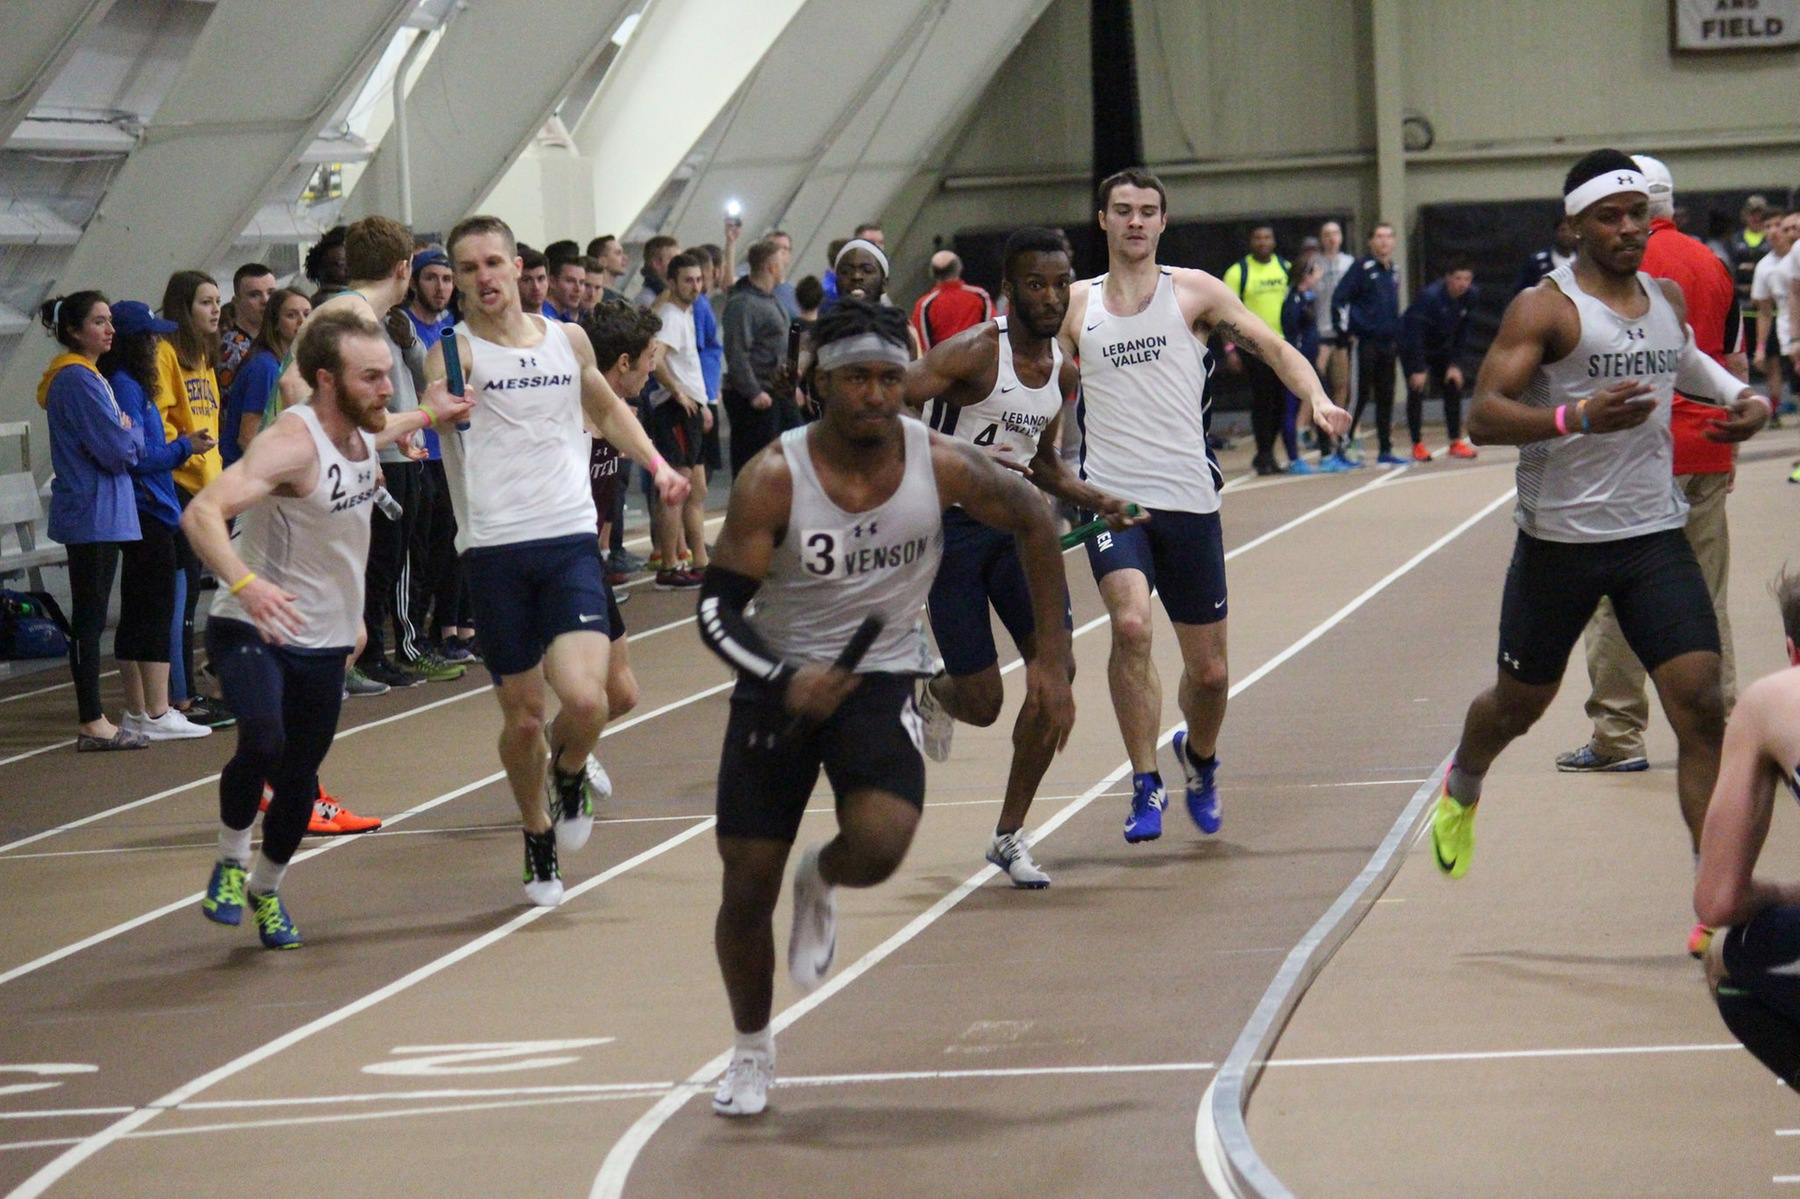 Mustangs Set School Record in 4x100 at Towson Invitational